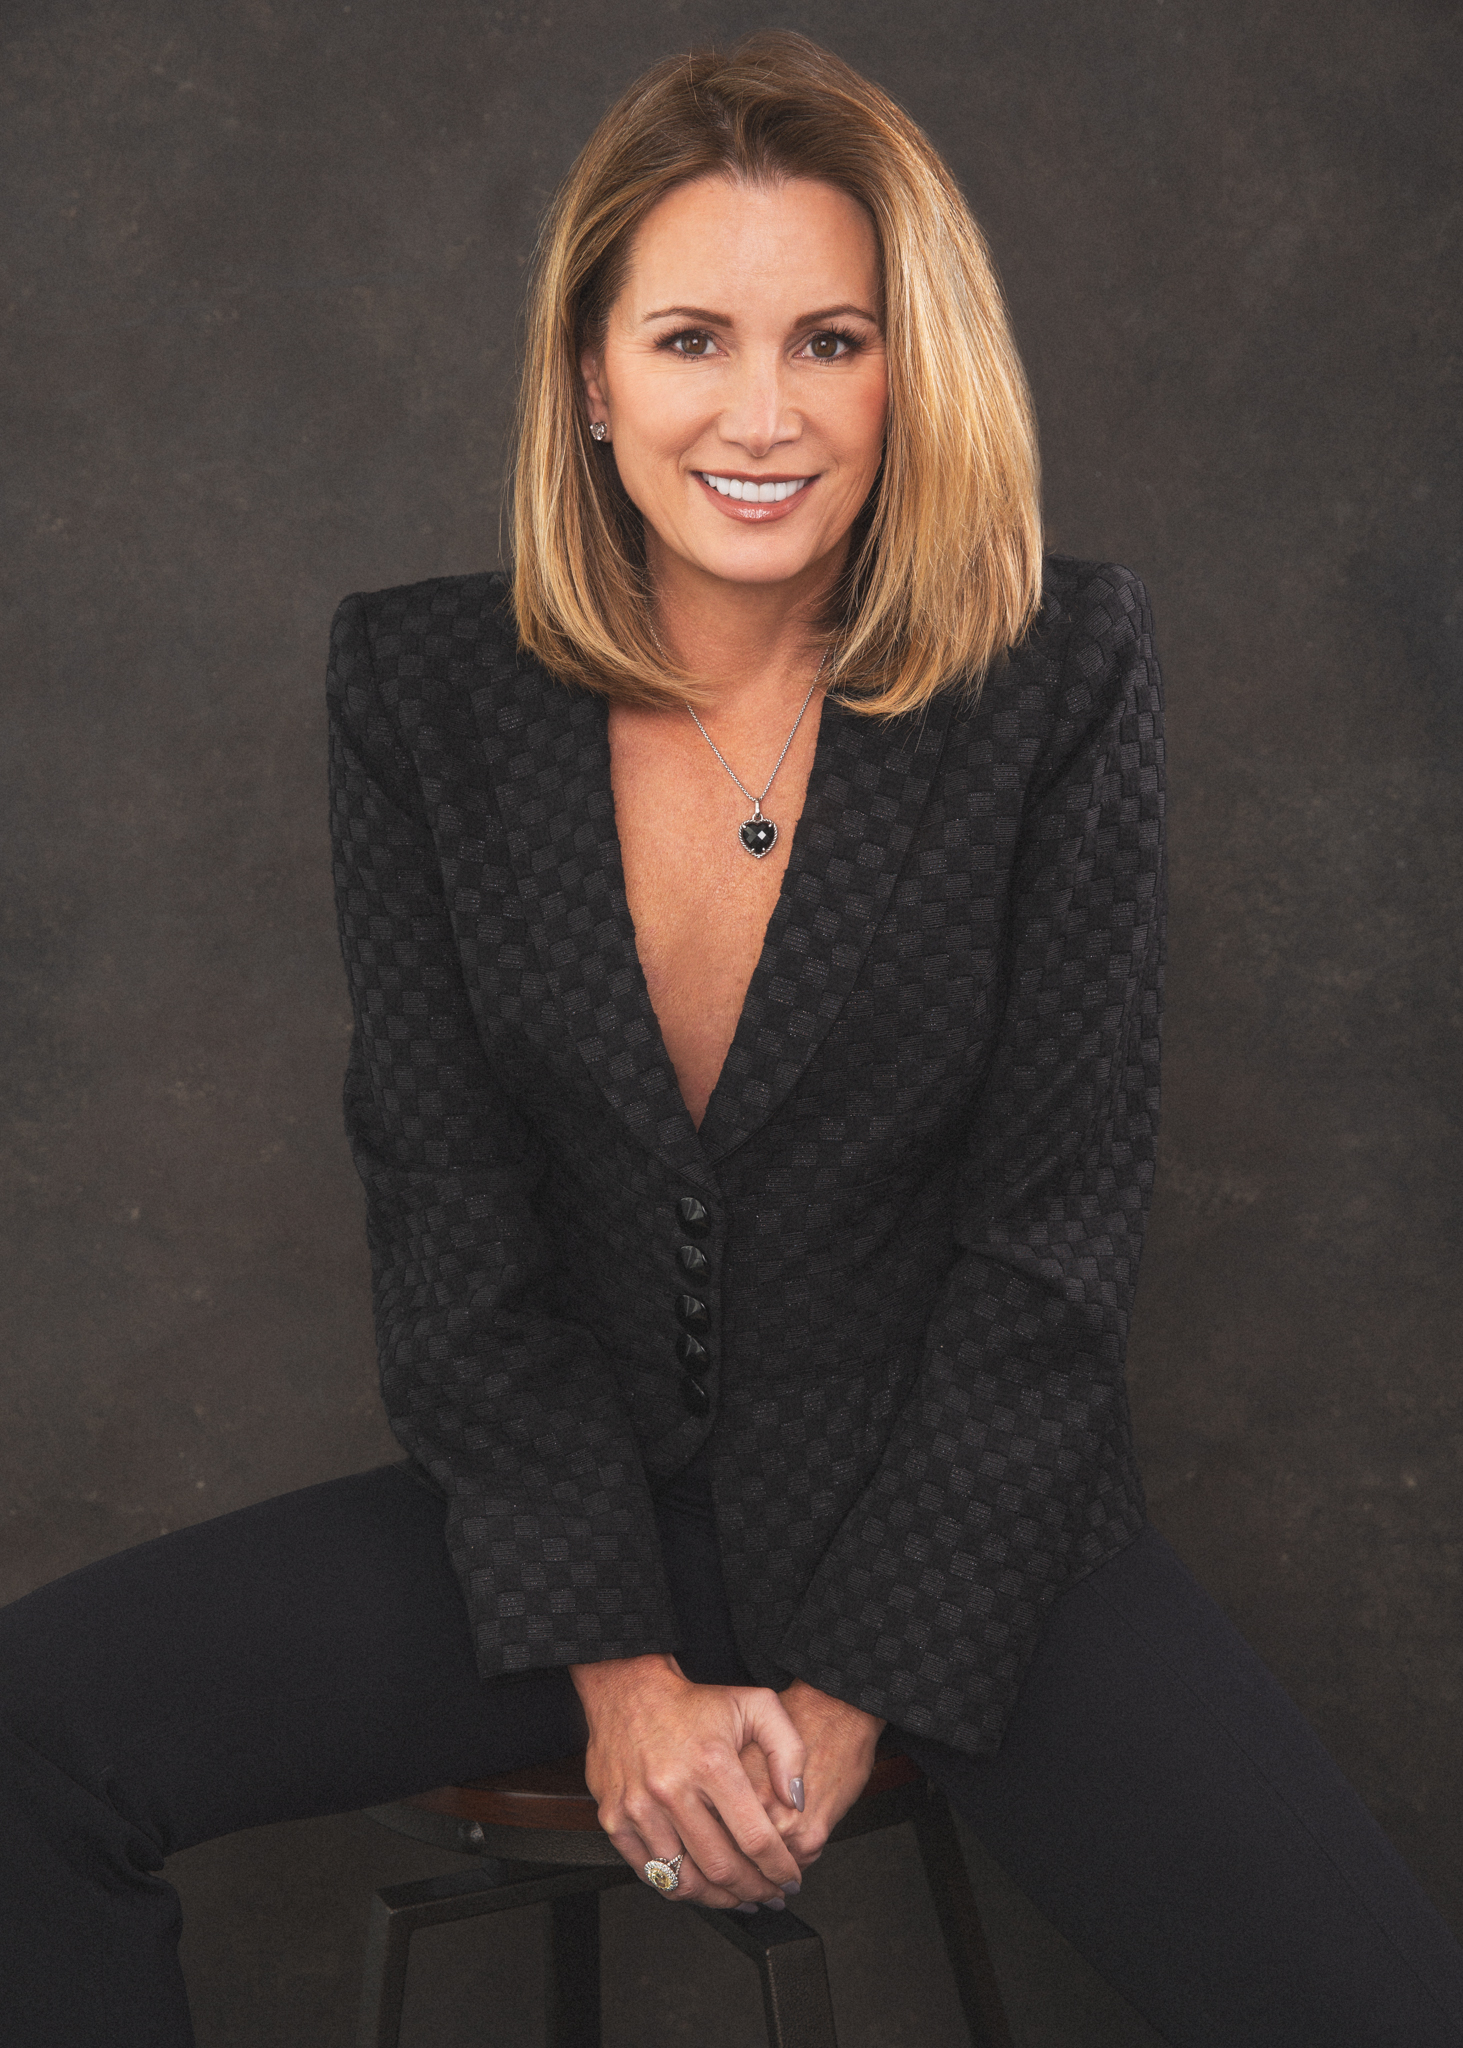 Blonde business woman in a suit seated on a stool in front of a dark background.